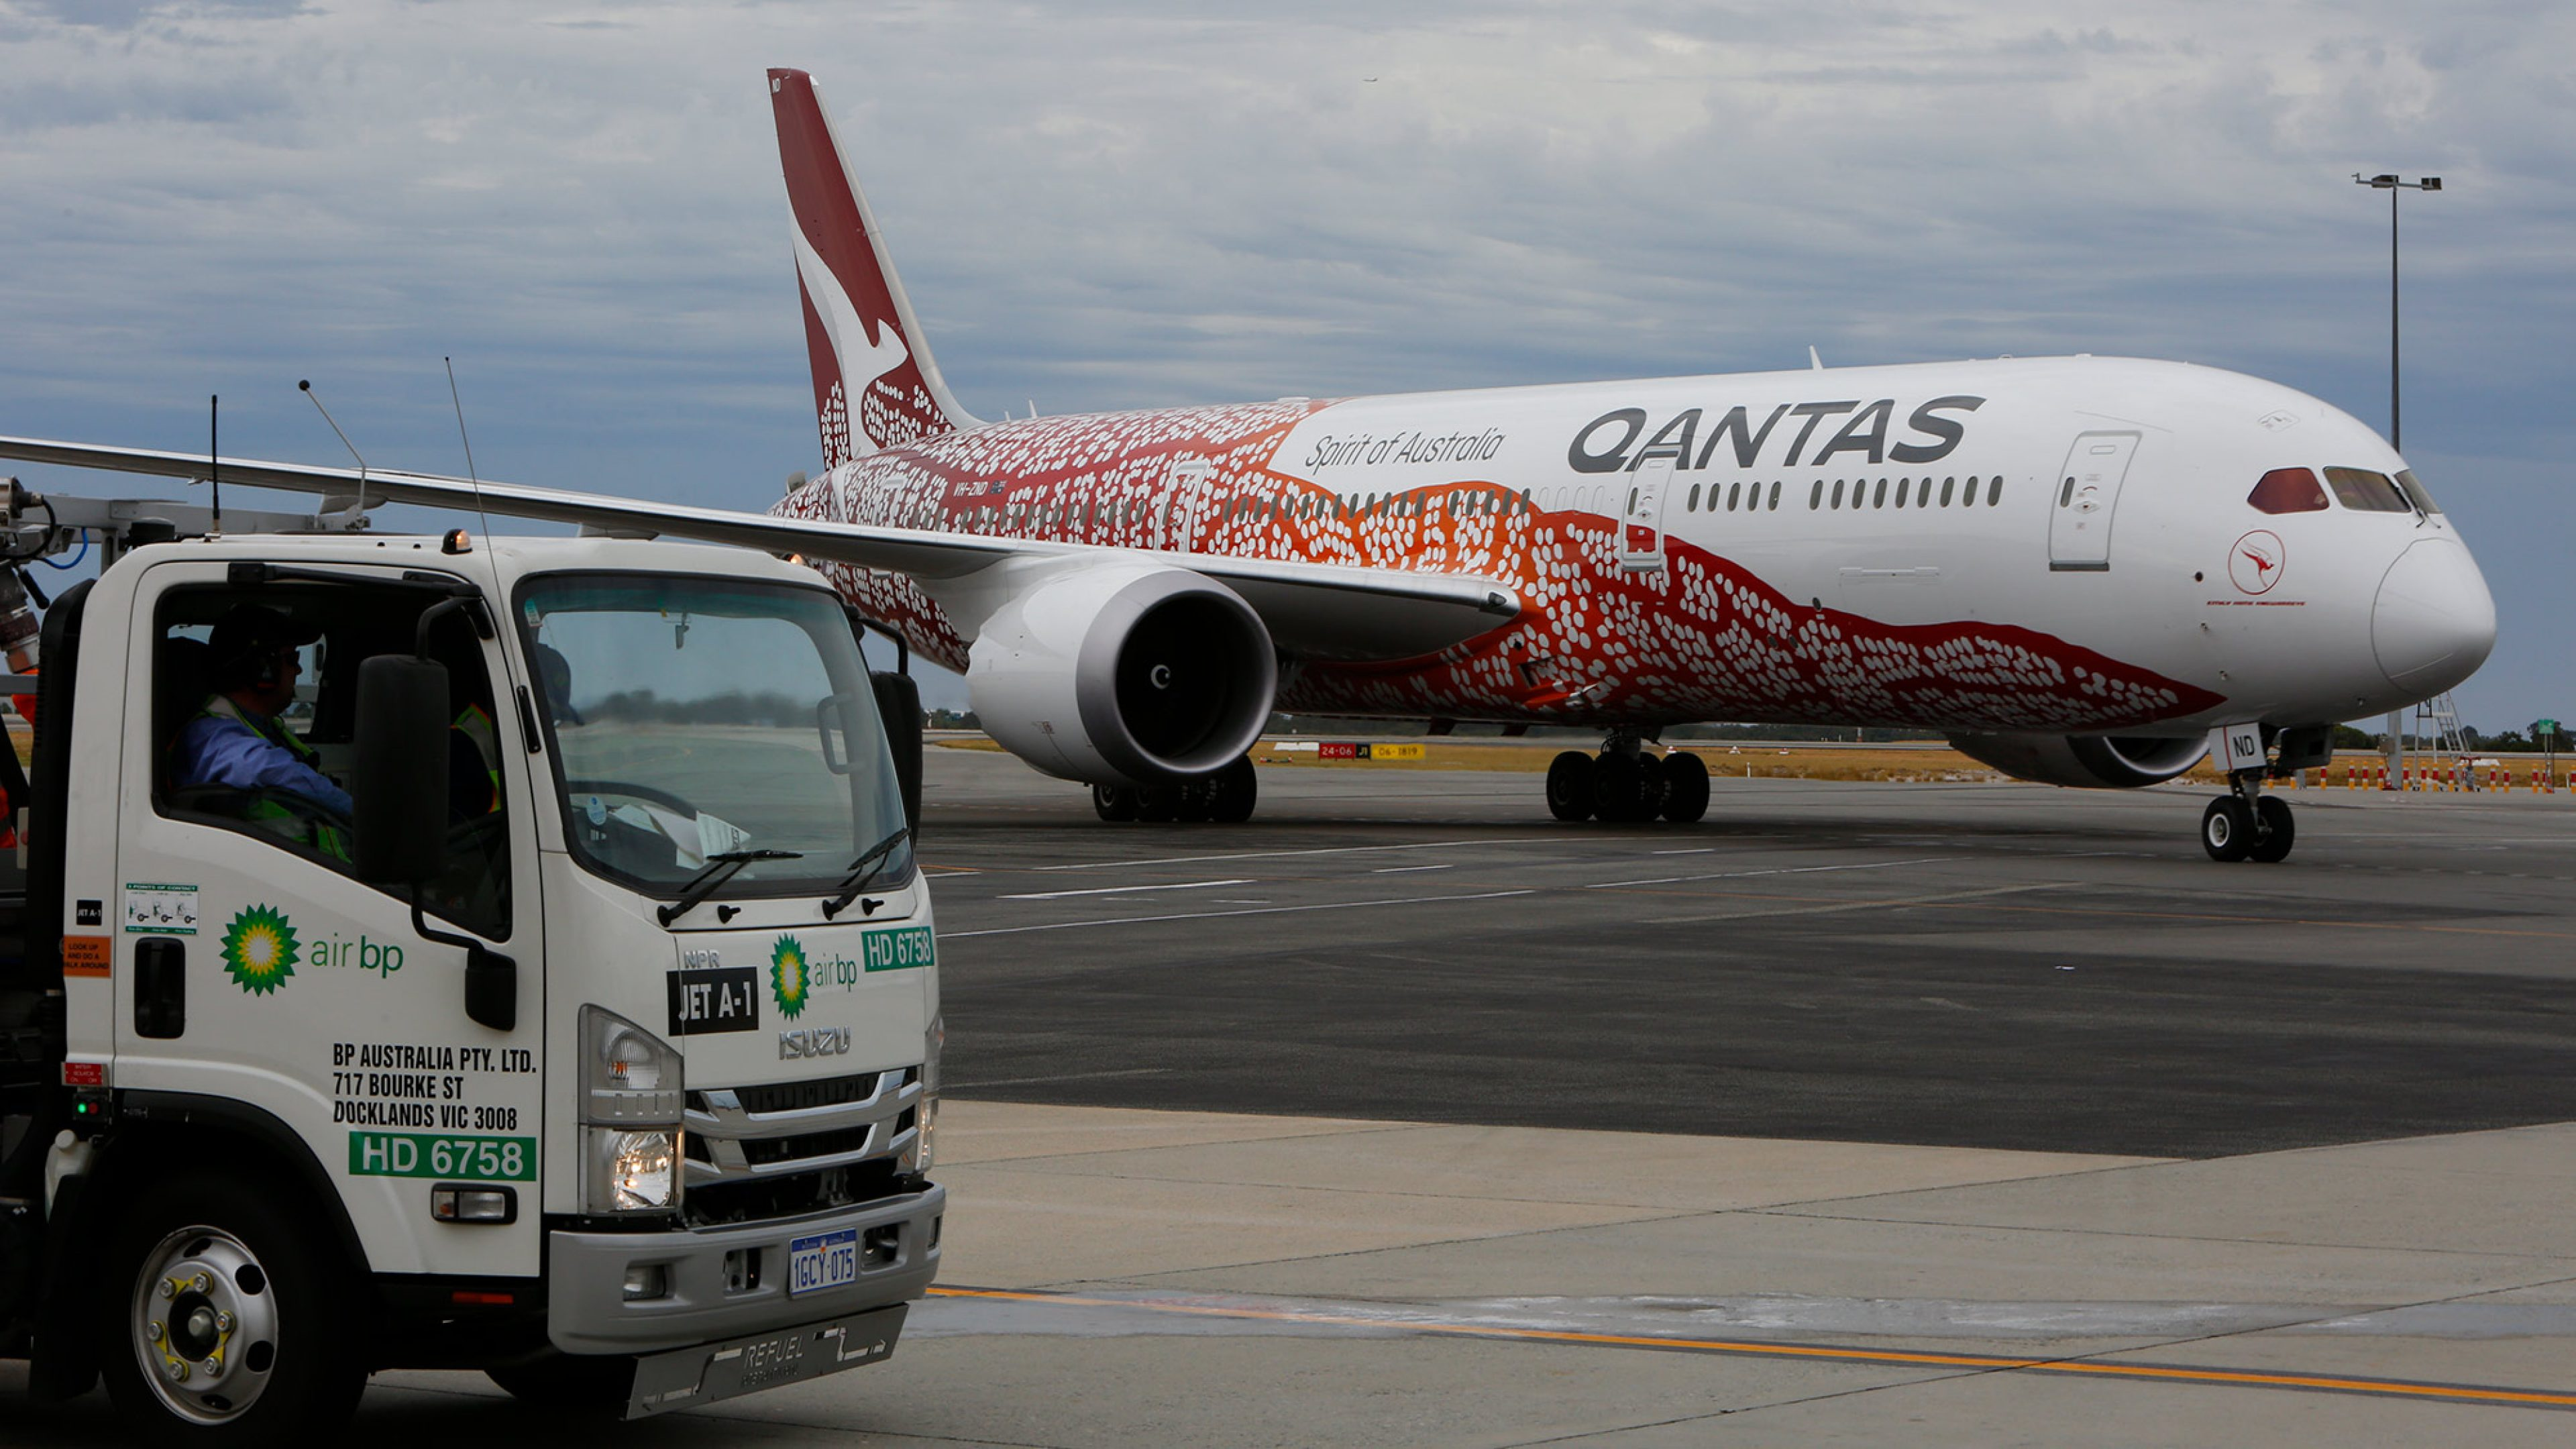 Air BP refuelling team meets the Qantas Dreamliner at Perth Airport